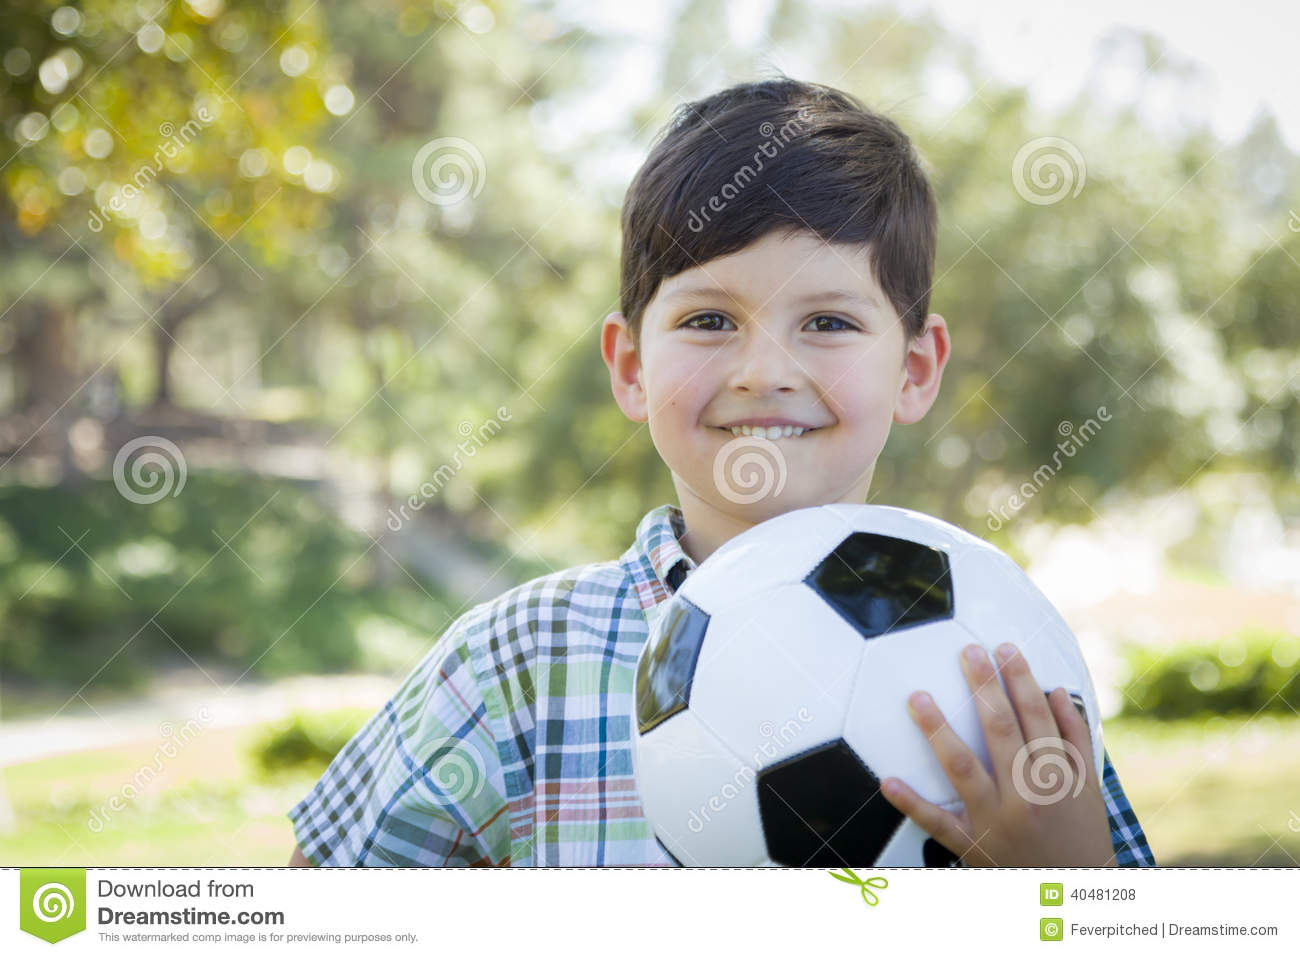 Cute Young Boy Playing With Soccer Ball In Park Stock